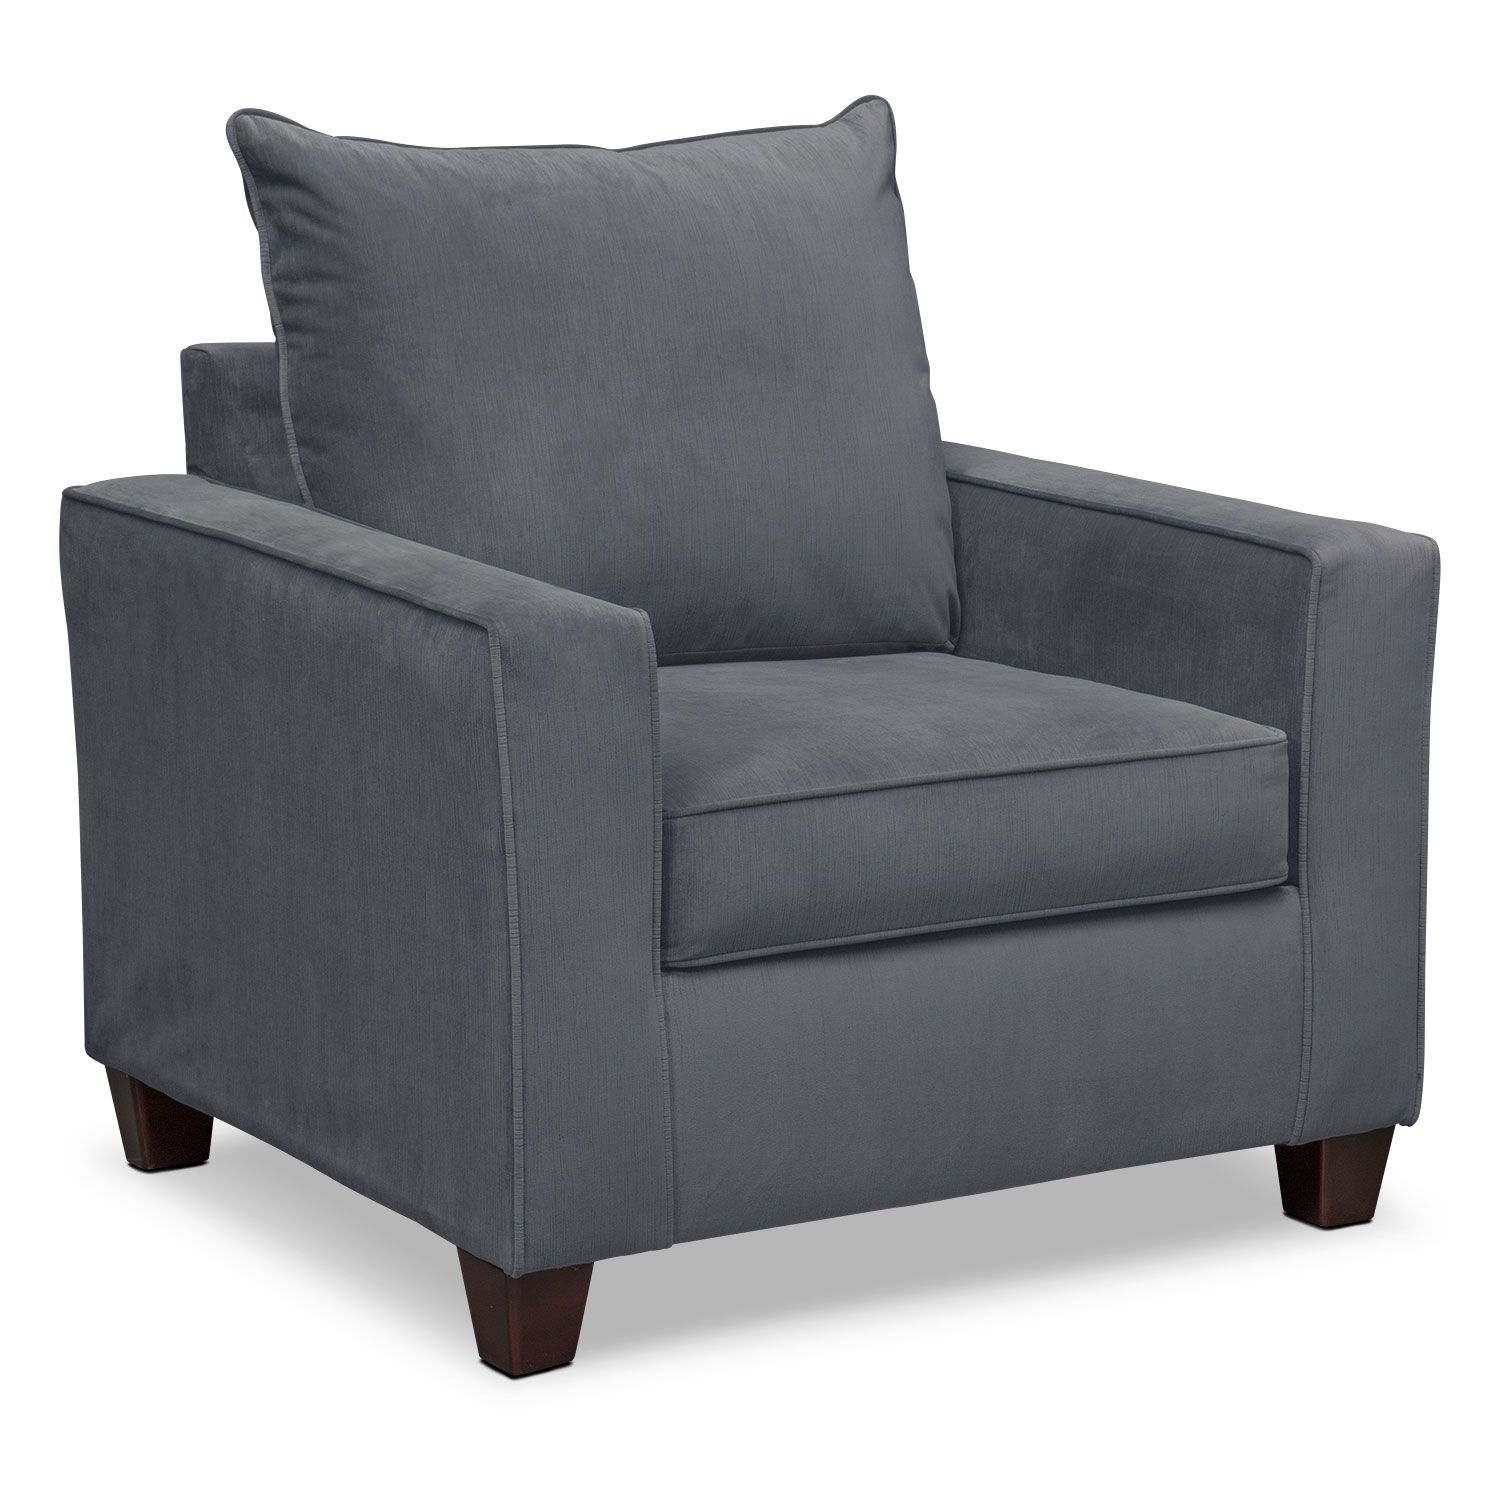 47++ Value city furniture credit card ideas in 2021